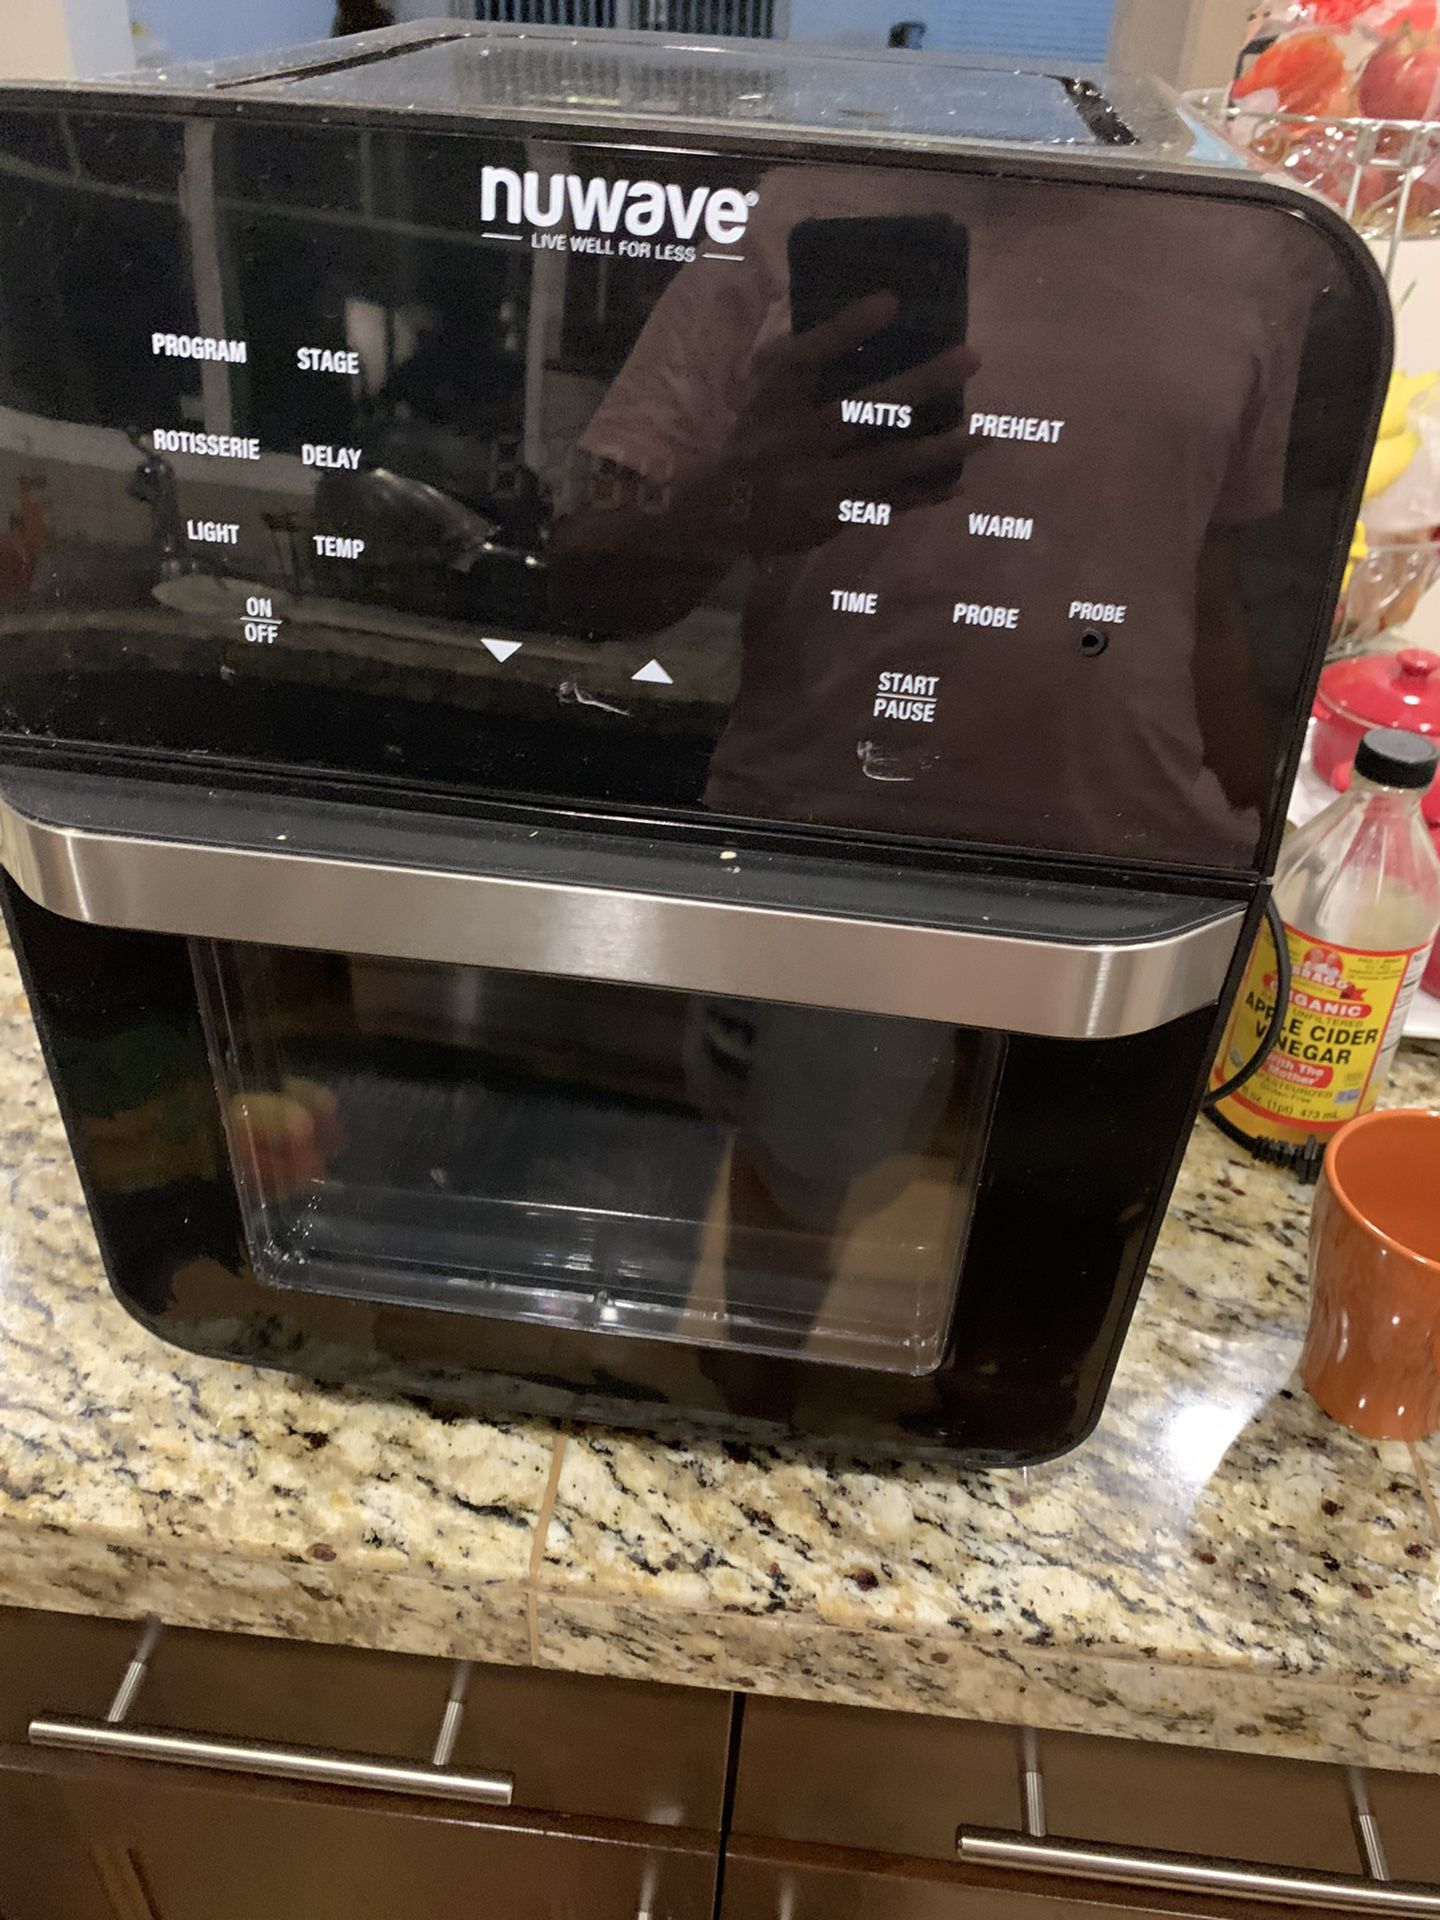 Nuwave Air Fryer - New not used even once